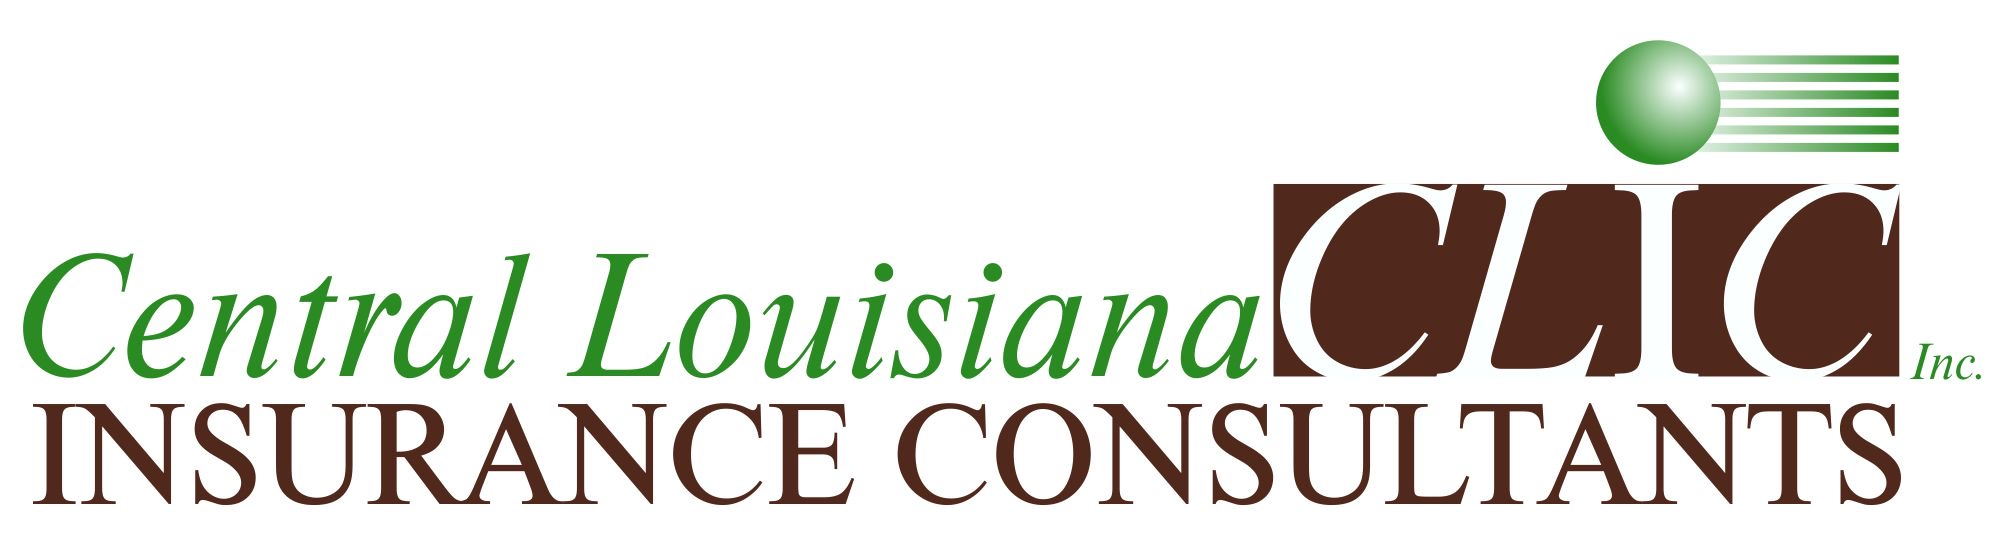 Title Sponsor  - Central Louisiana Insurance Consultants  - Logo